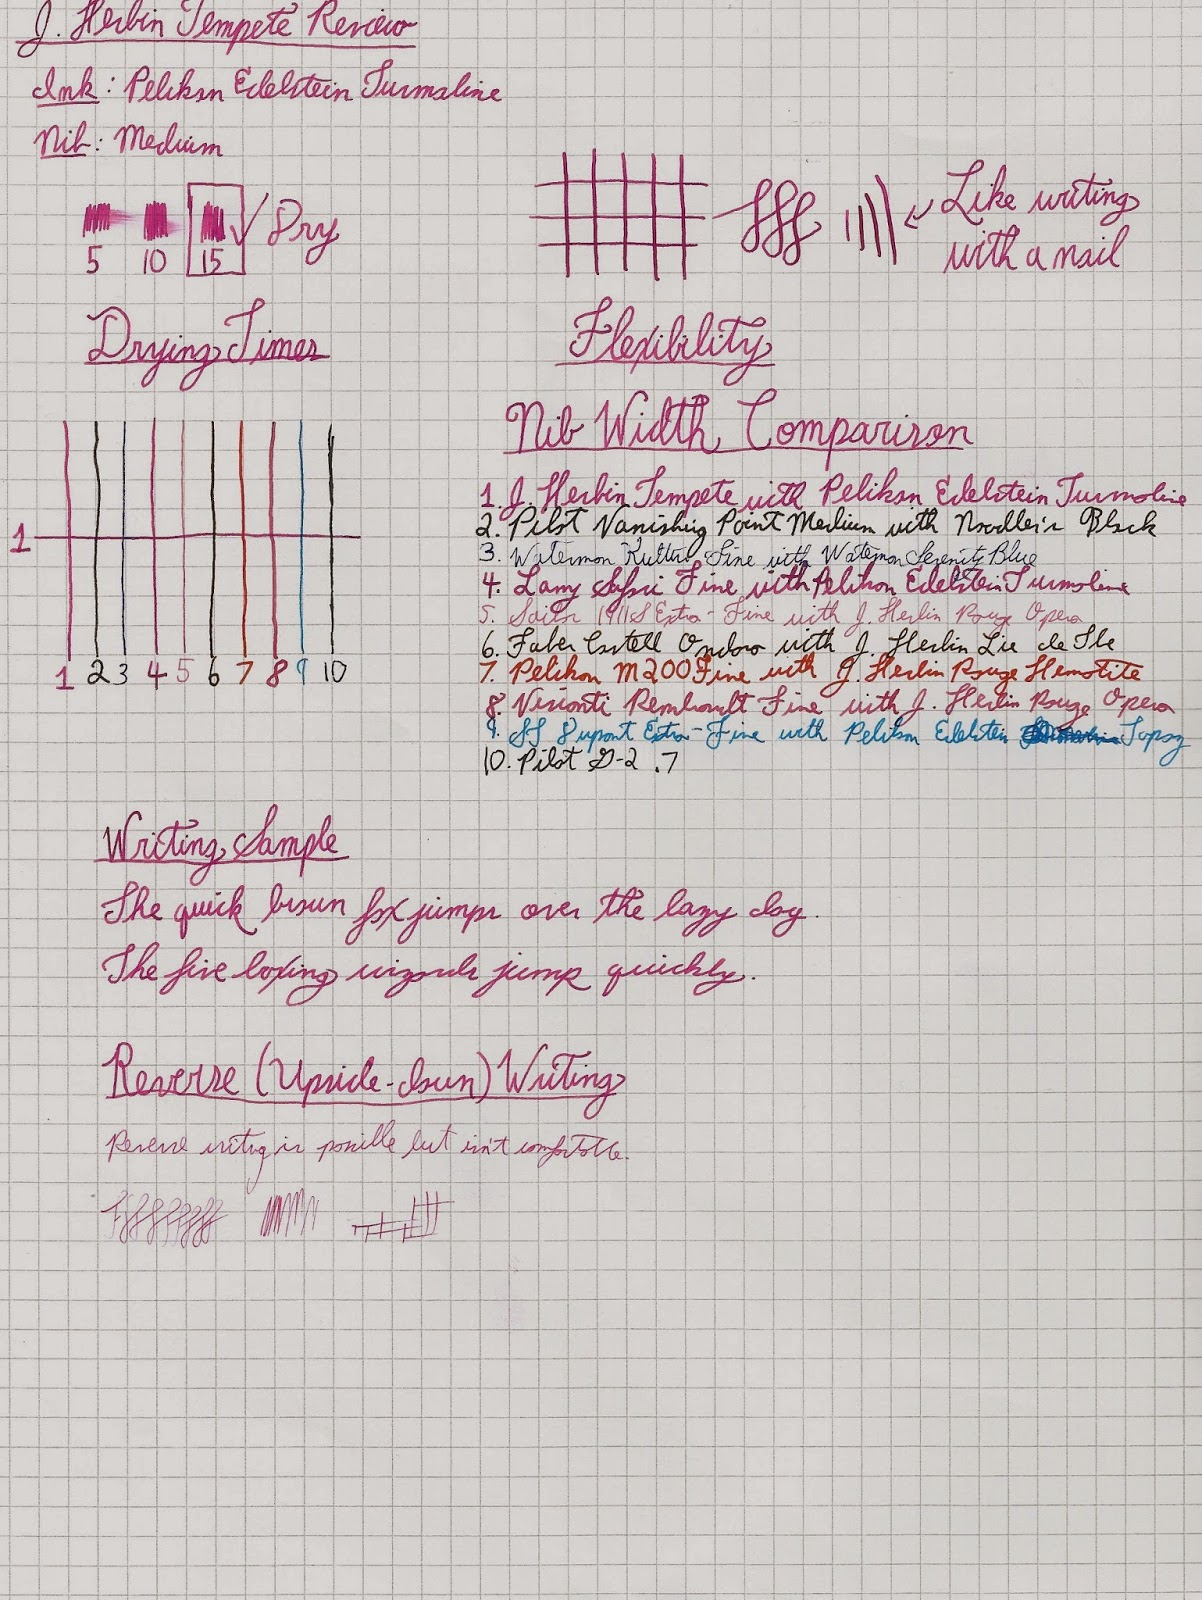 J. Herbin Tempête Writing Sample